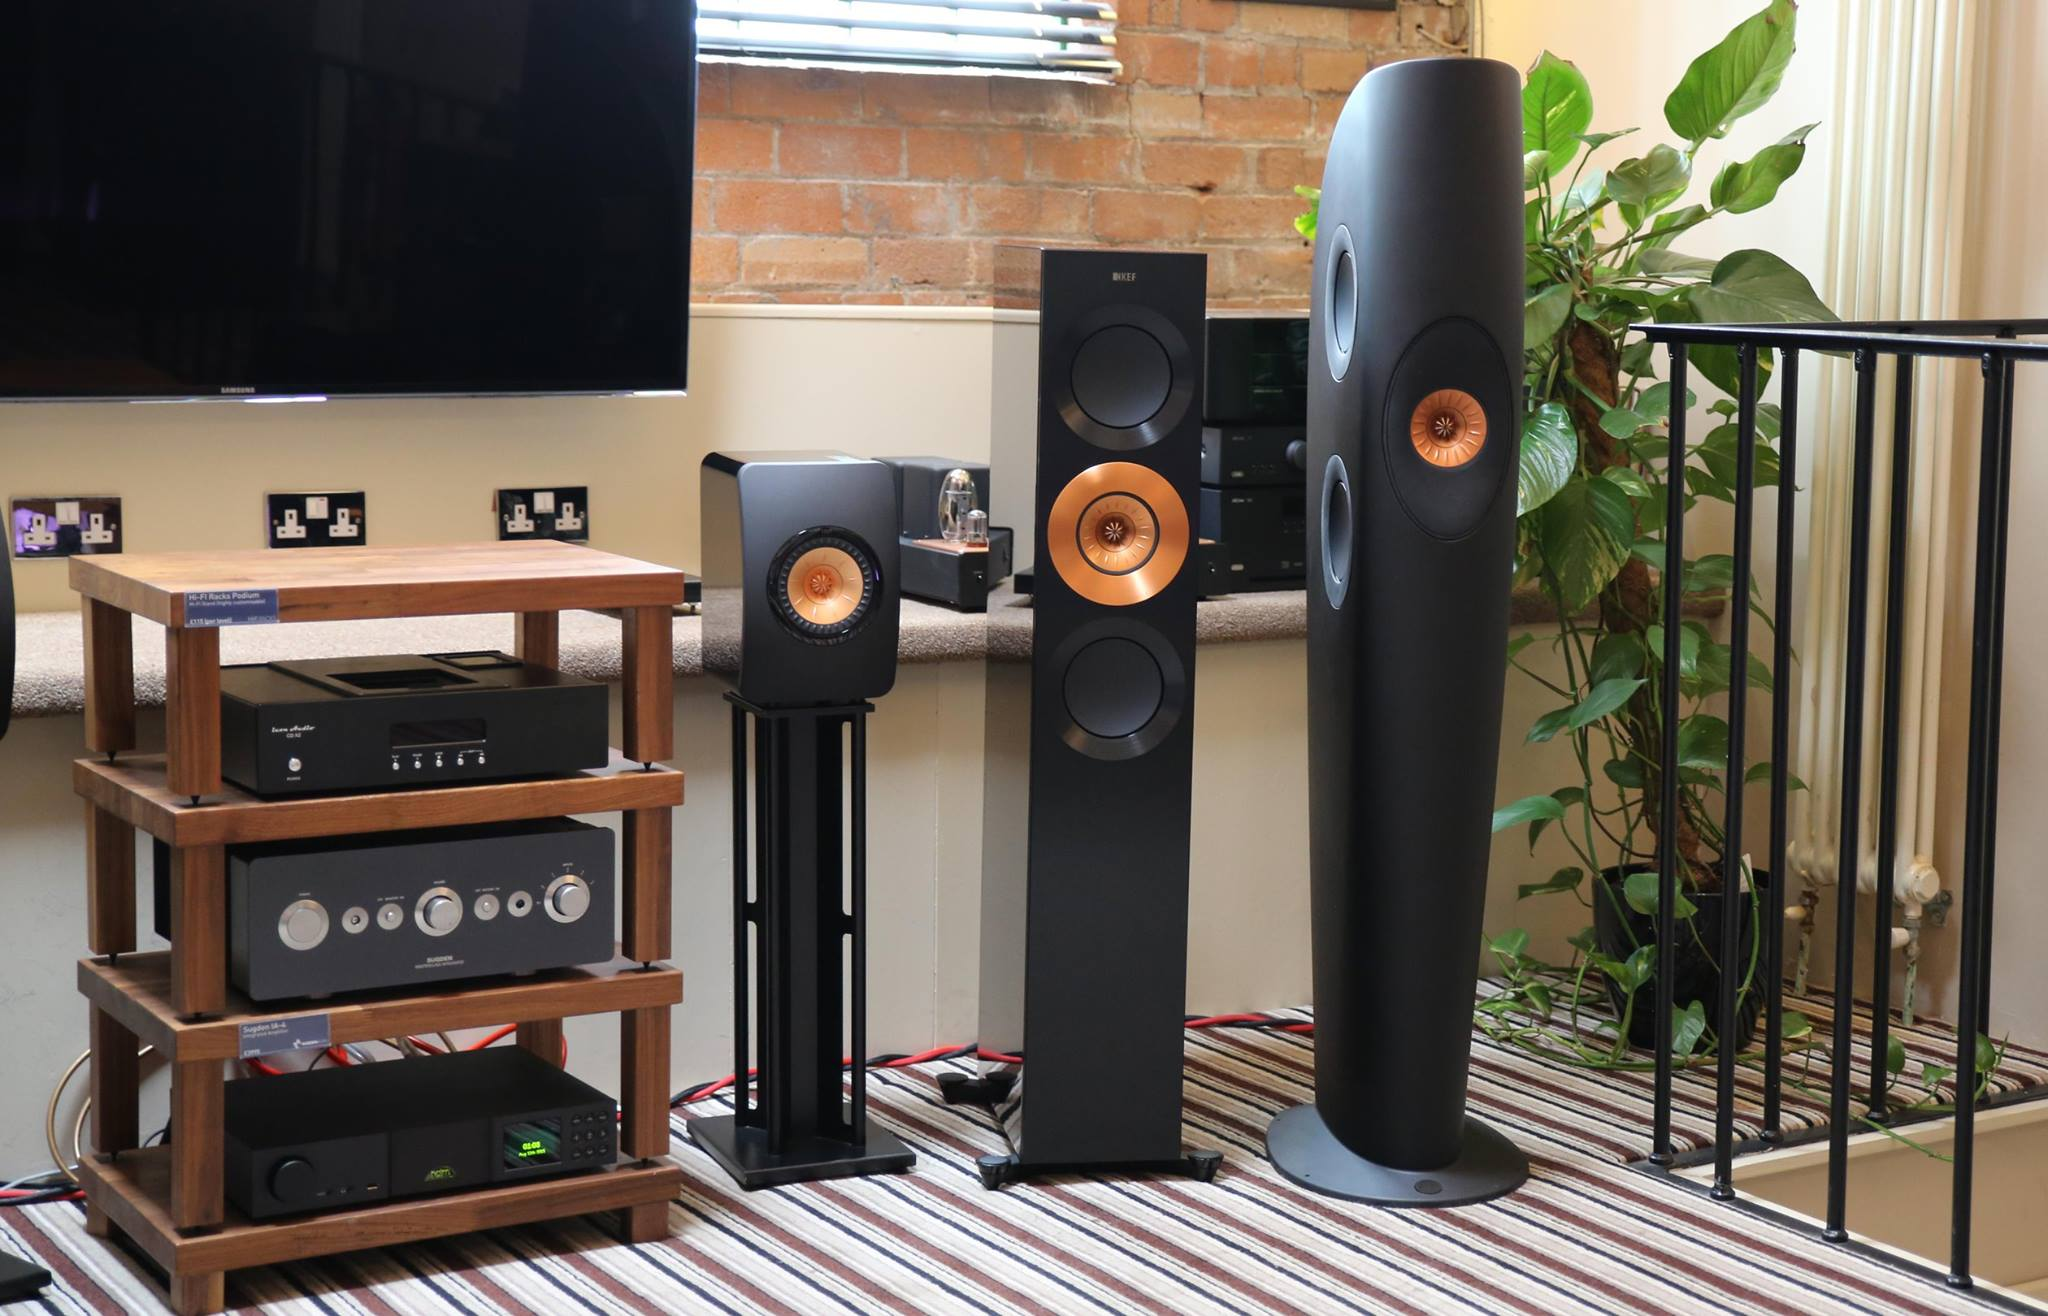 Kef S Gold Tweeter Edition Speakers All Together Now